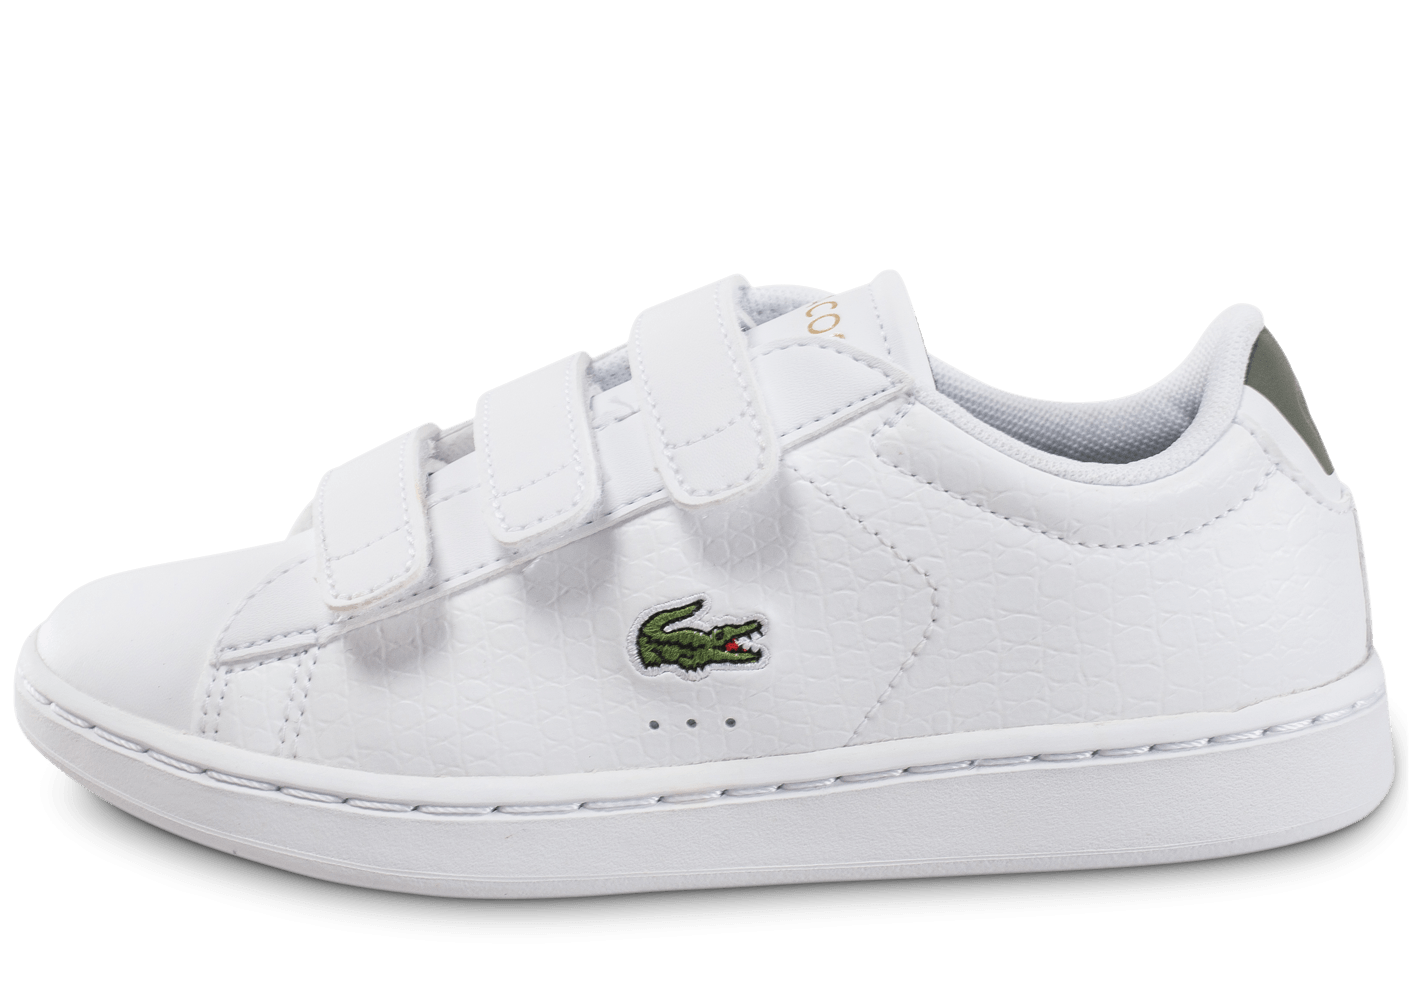 b53ca240f1 Lacoste Carnaby Evo Enfant Croc Pack - Chaussures Enfant - Chausport